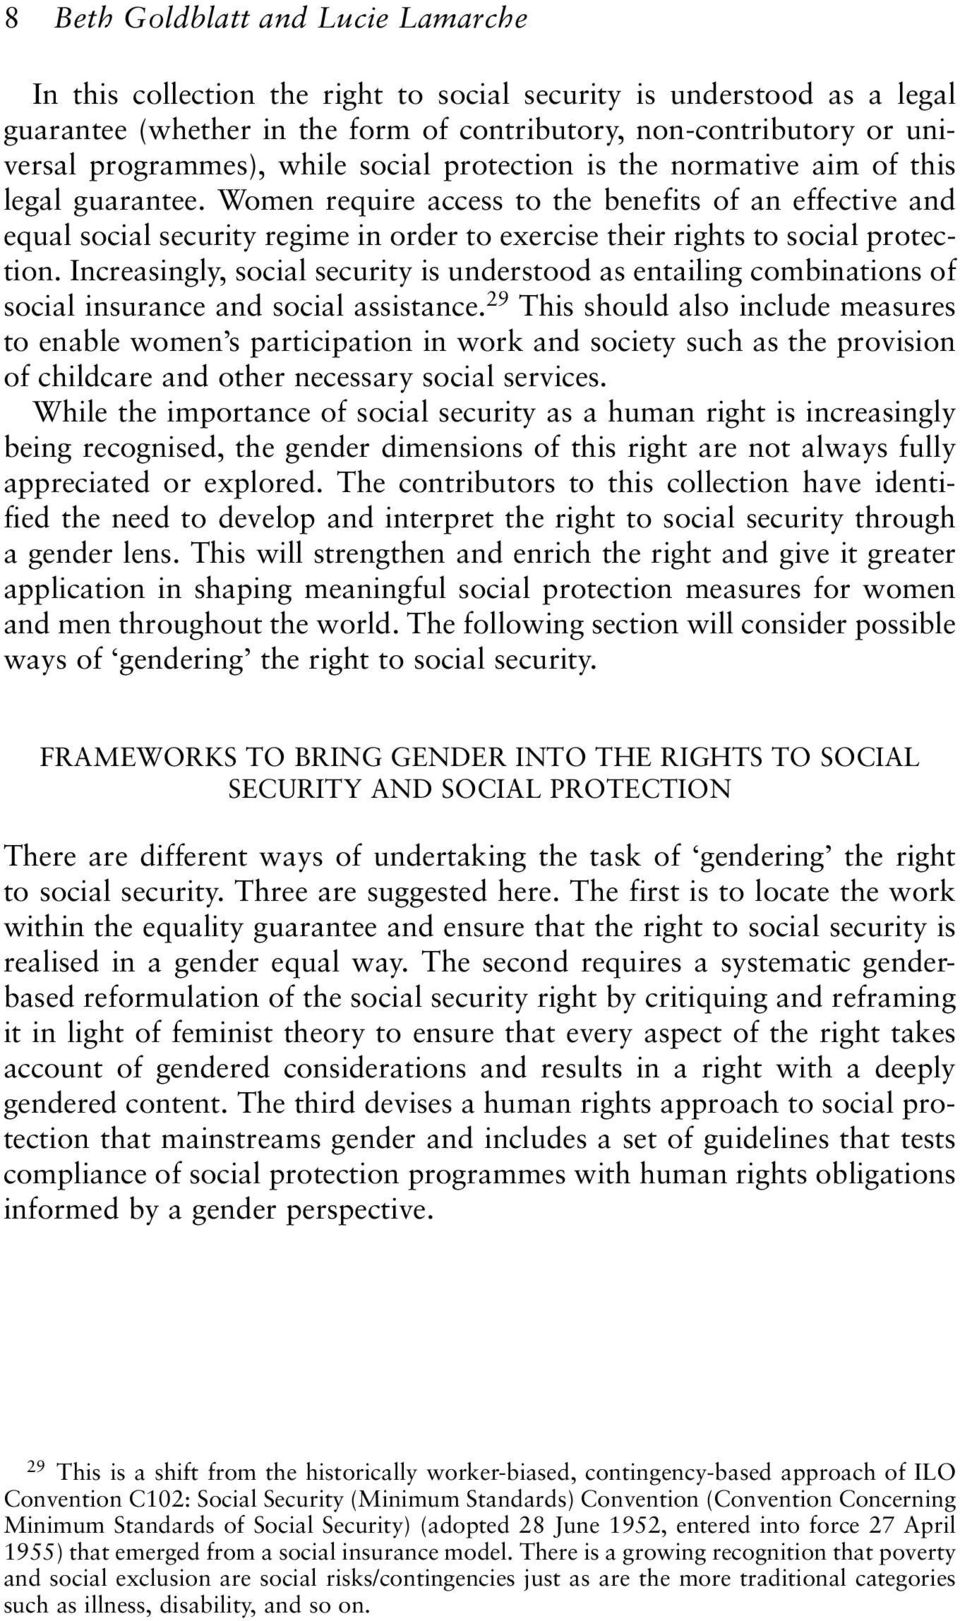 Women require access to the benefits of an effective and equal social security regime in order to exercise their rights to social protection.